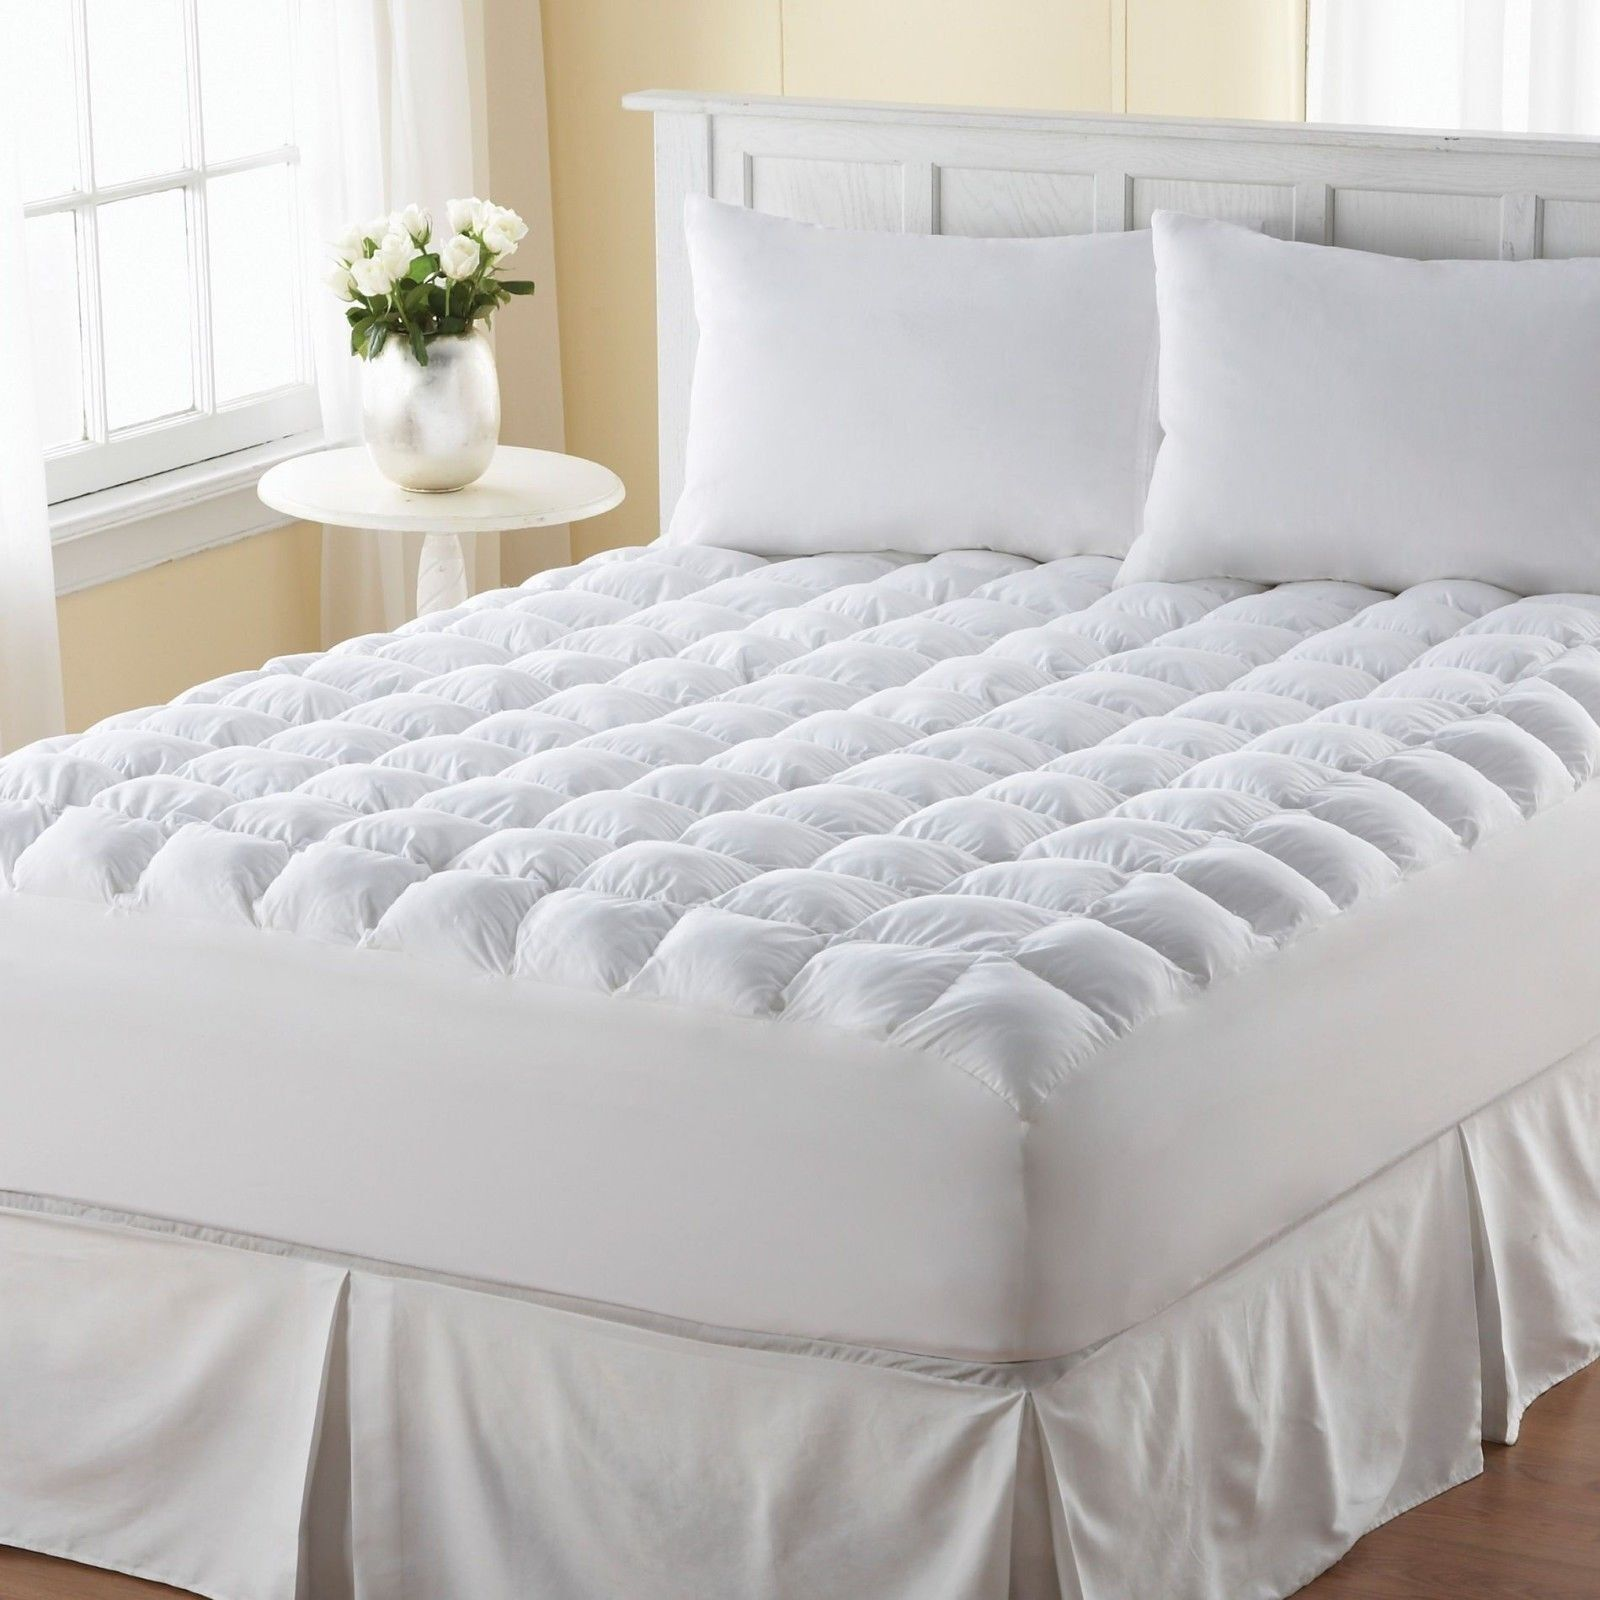 buy divan utopia from beds deluxe now mattress a online bed topper only pillow top